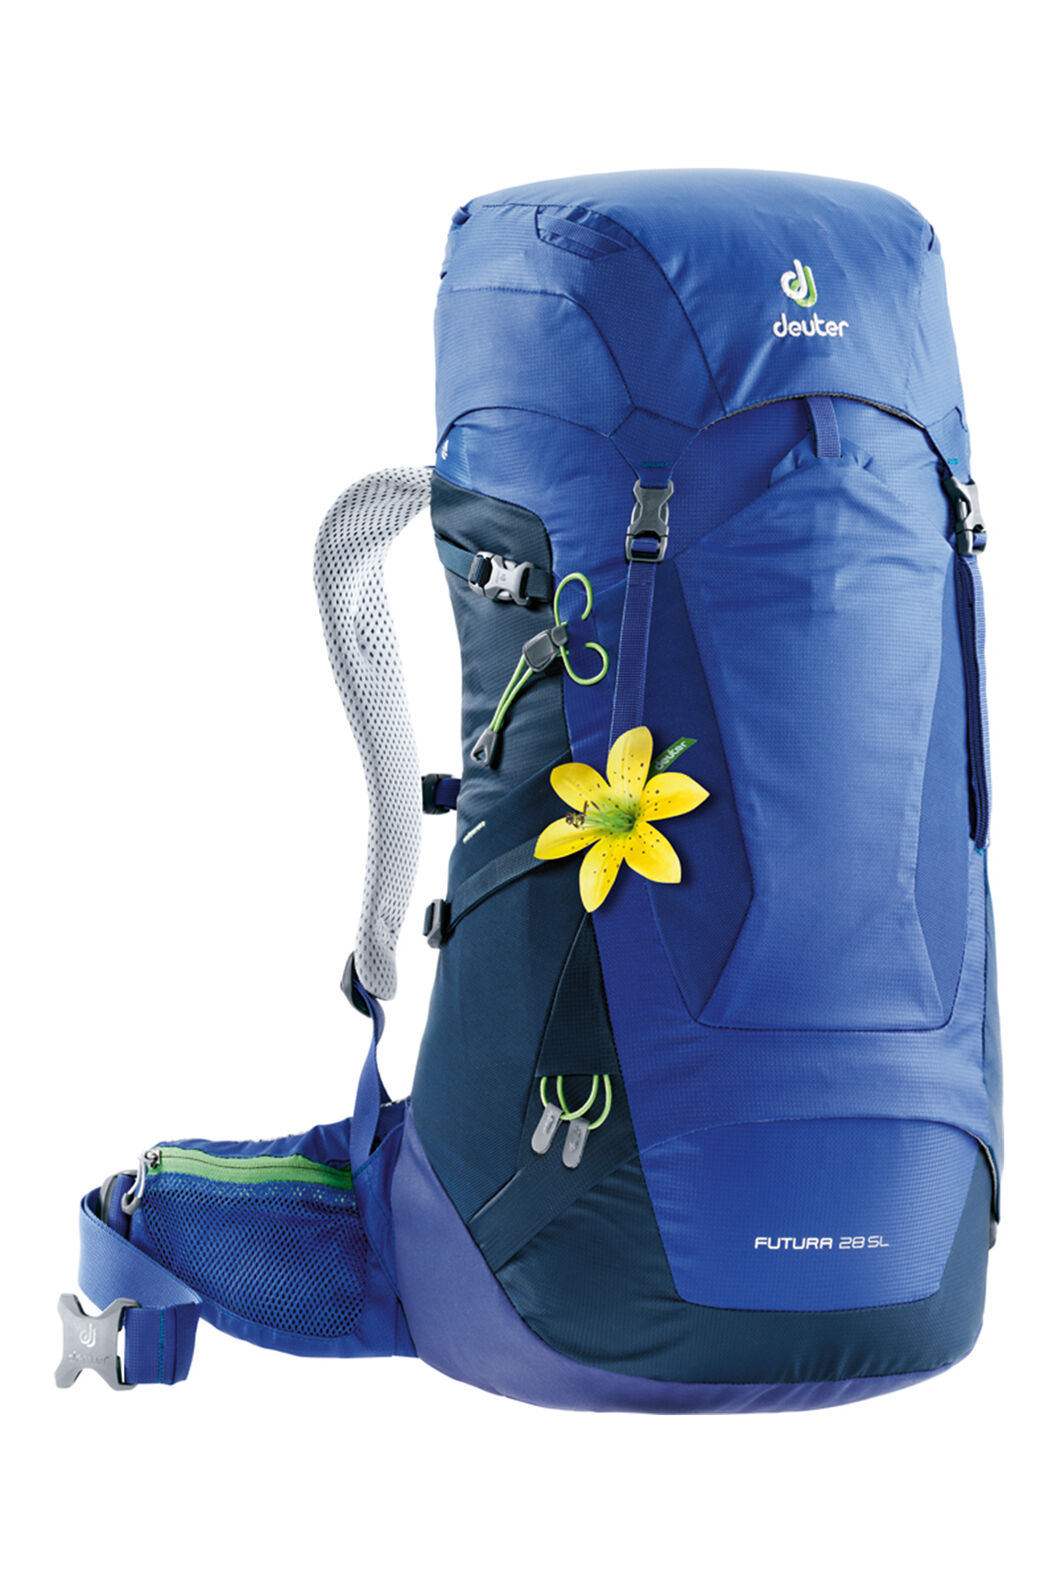 Deuter Futura SL Trekking Pack 28L, None, hi-res